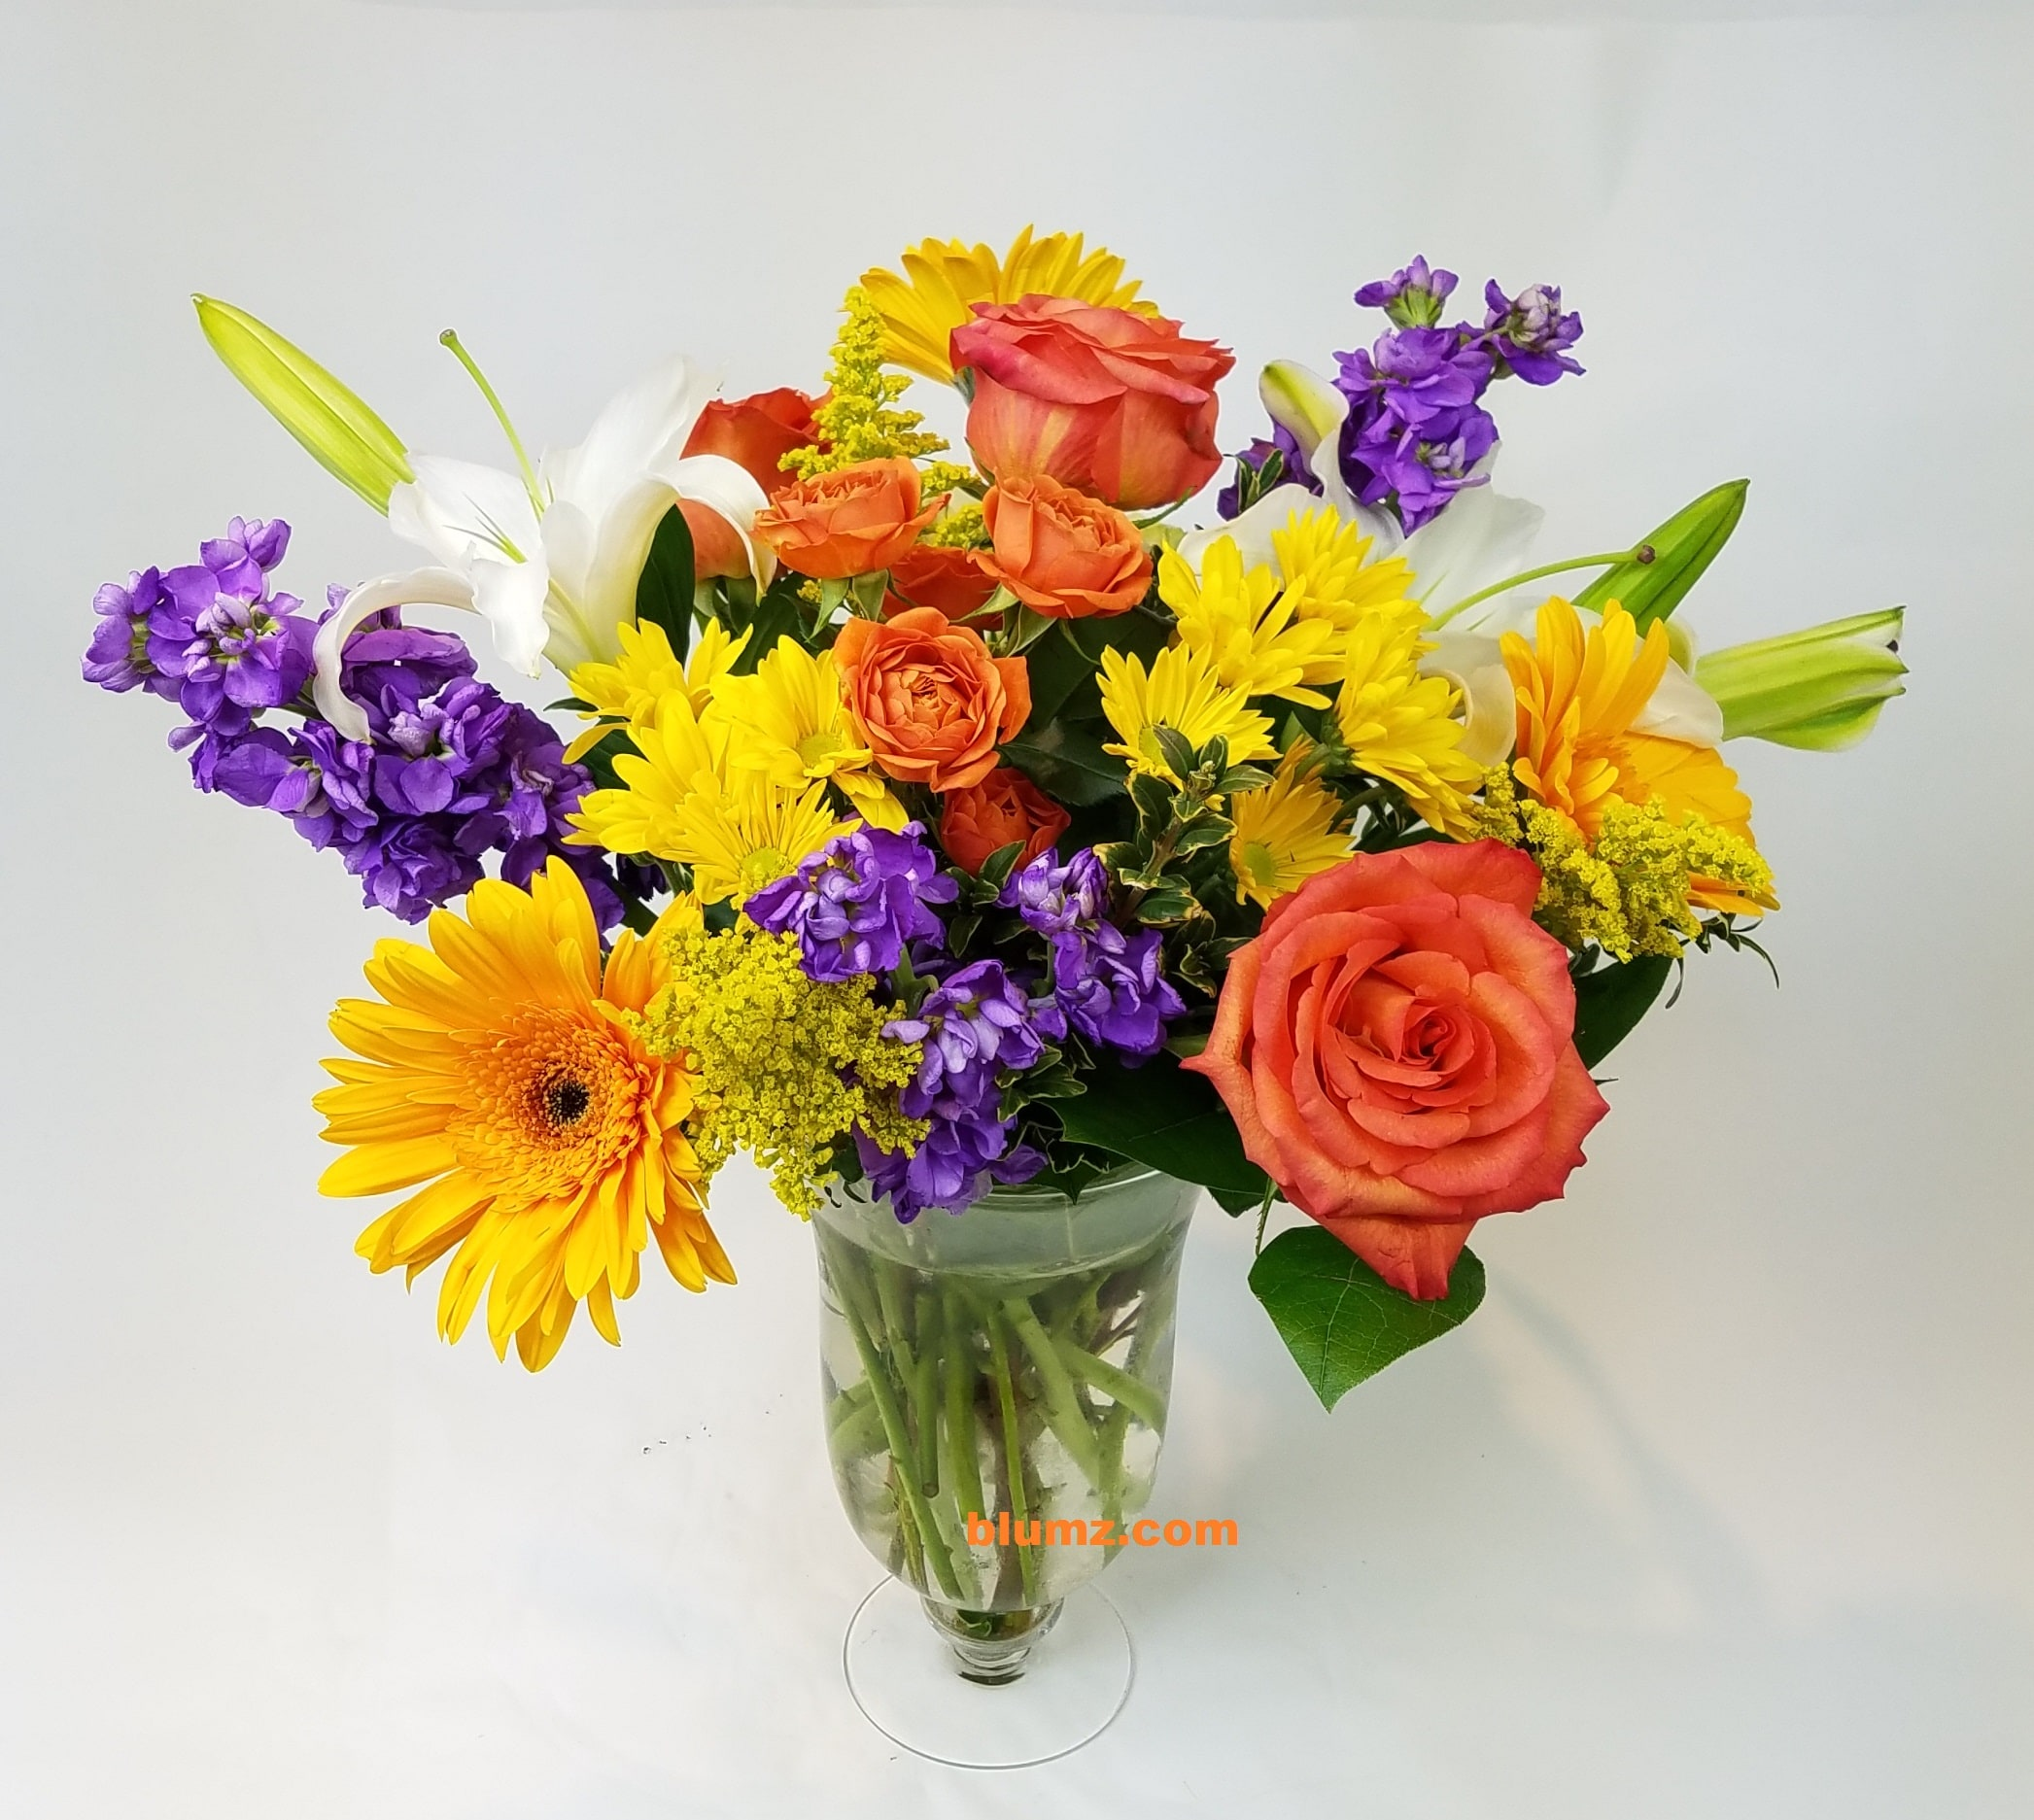 About blumz jrdesigns ferndale mi florist in single flower arrangements such as an all rose bouquet or orchids we will make every attempt to match the flower type but may substitute with another izmirmasajfo